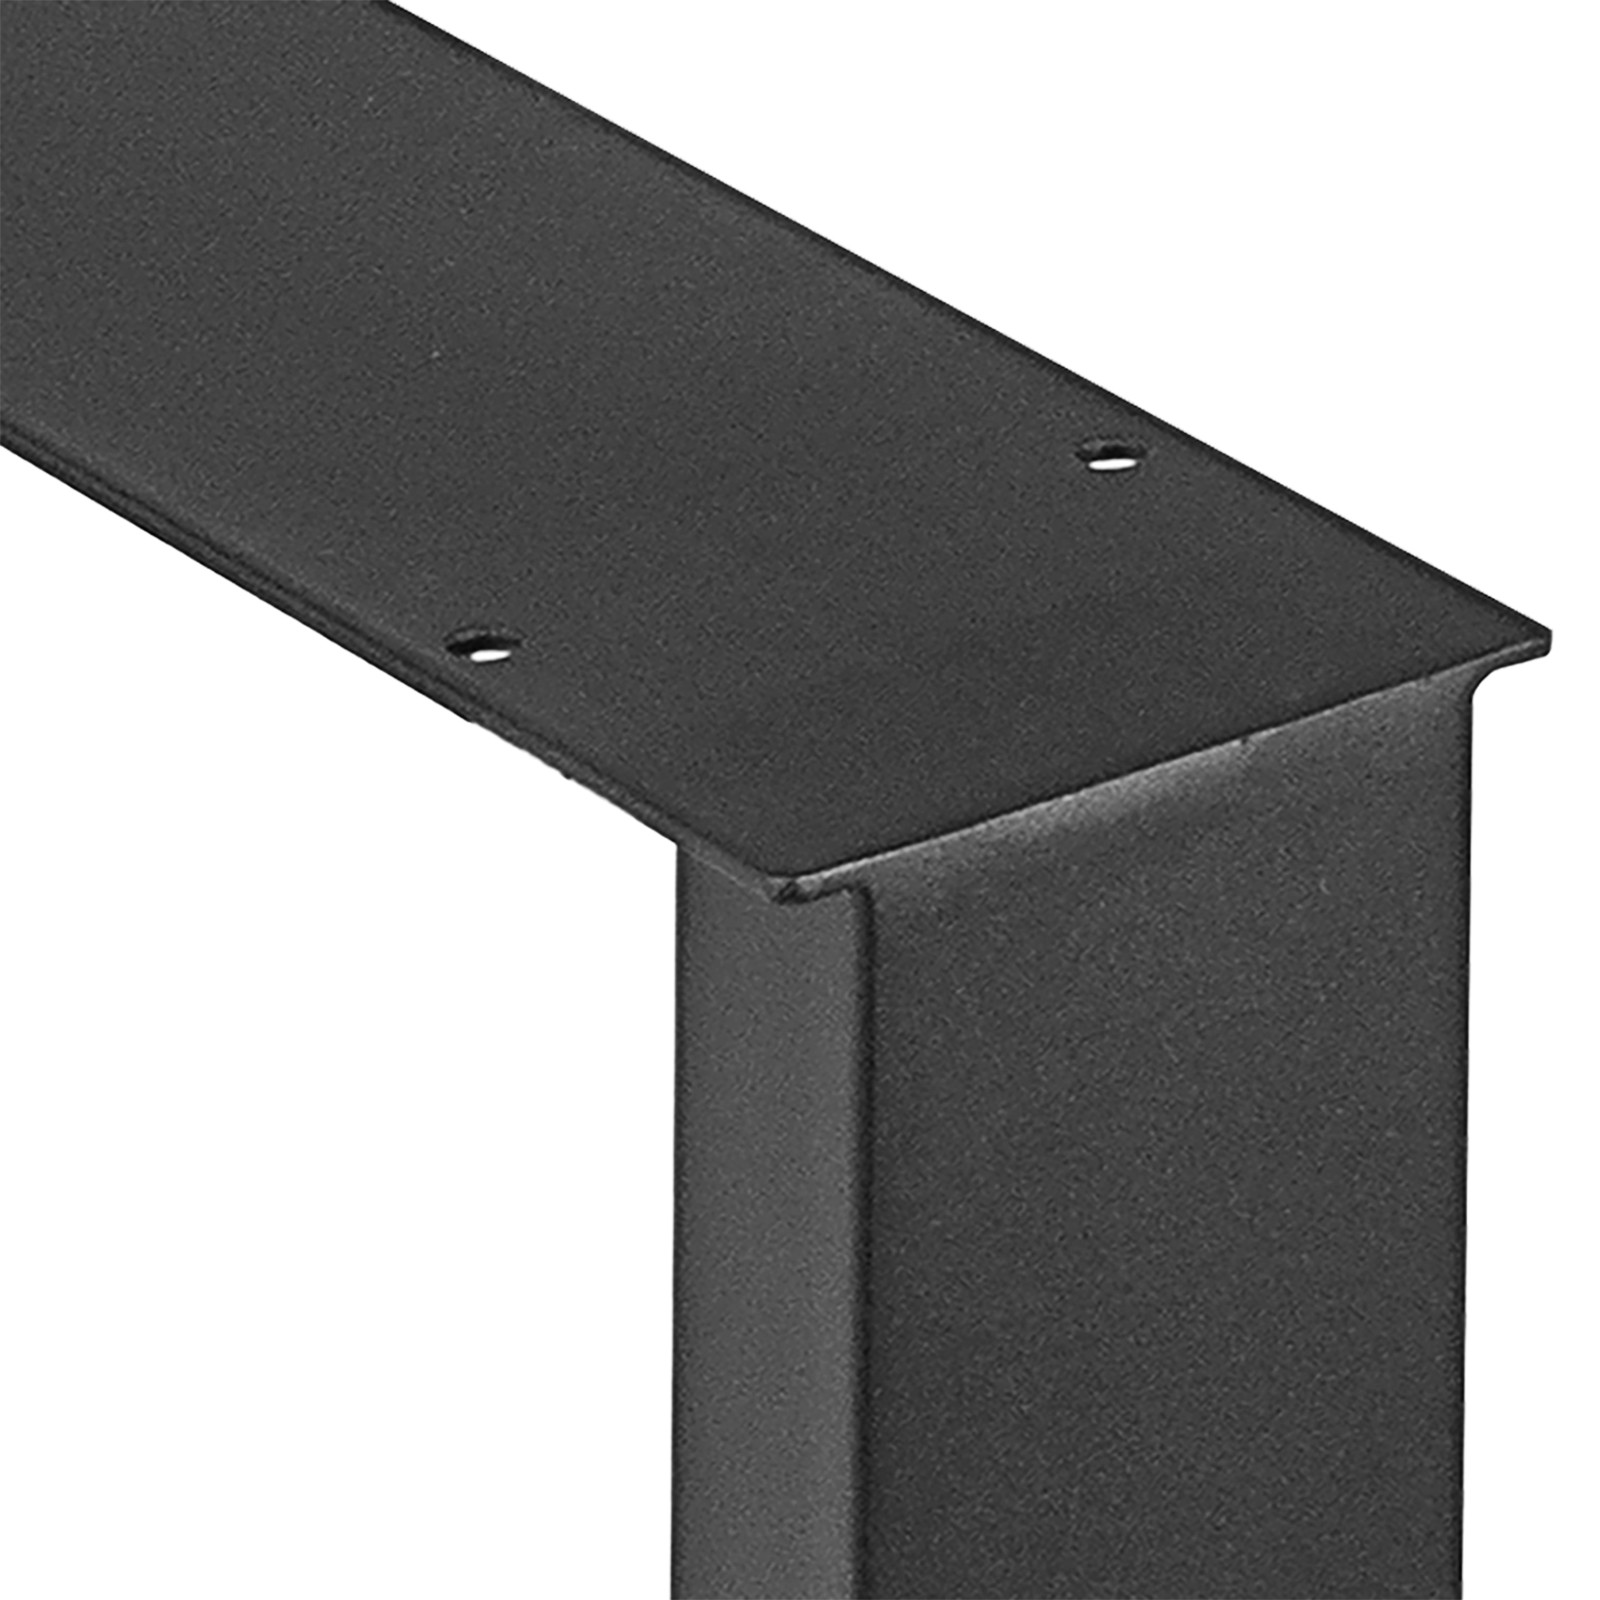 2X-Table-Legs-Black-Dining-Table-Leg-Heavy-Duty-Computer-Desk-Legs-Rectangle thumbnail 19